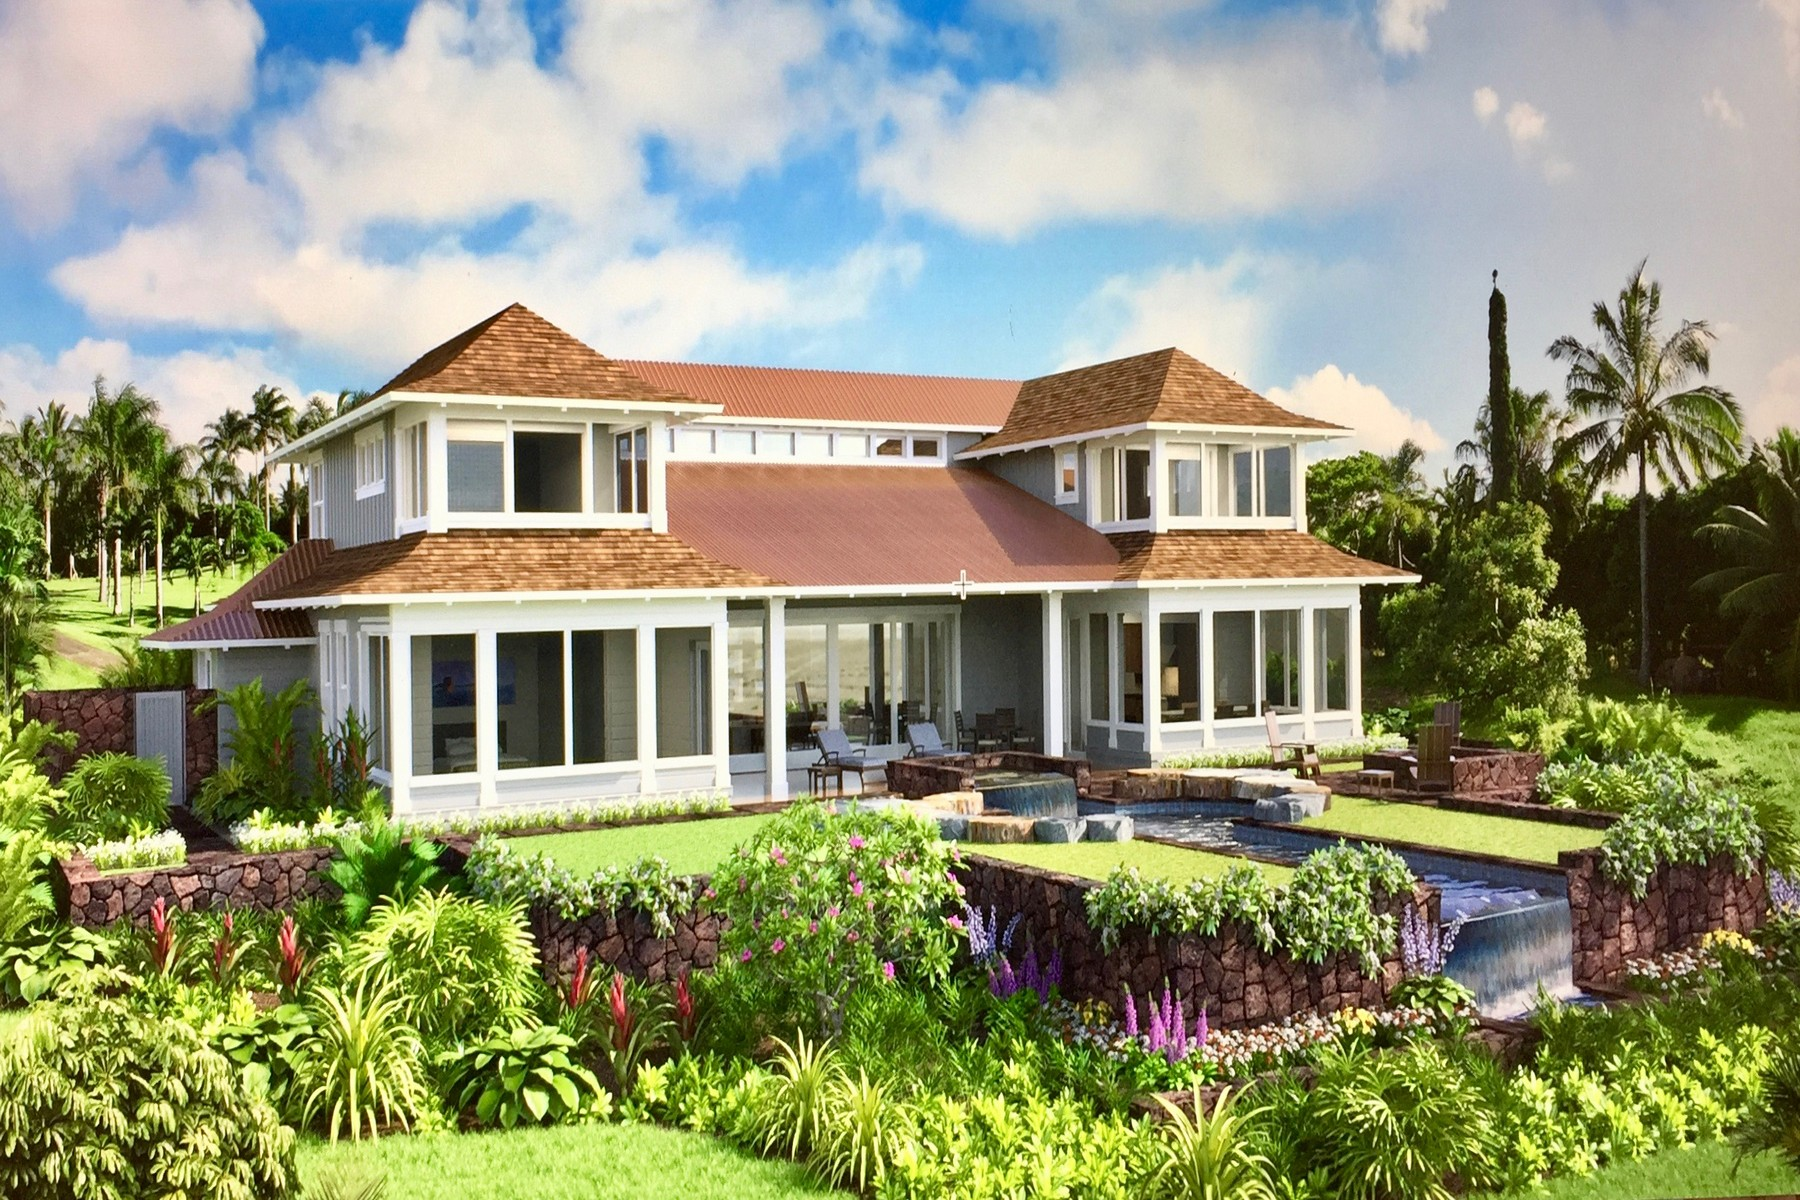 Casa Unifamiliar por un Venta en THE HAIKU HOUSE...Rare Ocean Front New Construction in Haiku, Maui 40 Hale Pili Way, Lot 15 Aina O Ka Hale Pili Haiku, Hawaii, 96708 Estados Unidos